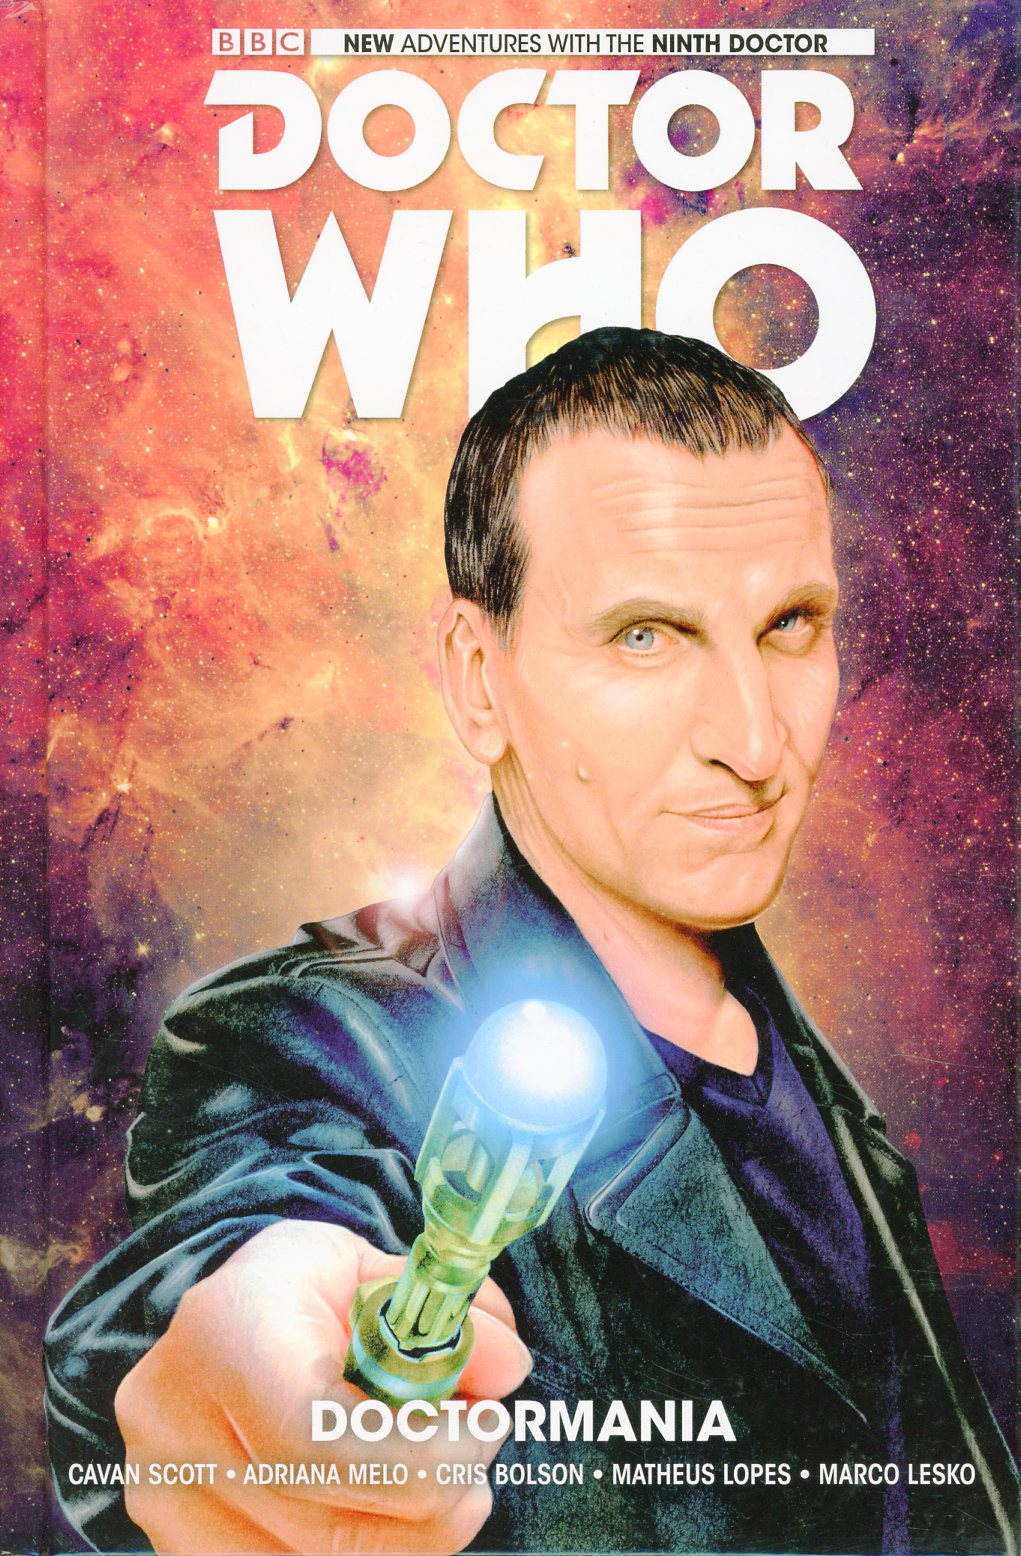 Doctor Who 9th Doctor Vol 2 Doctormania HC